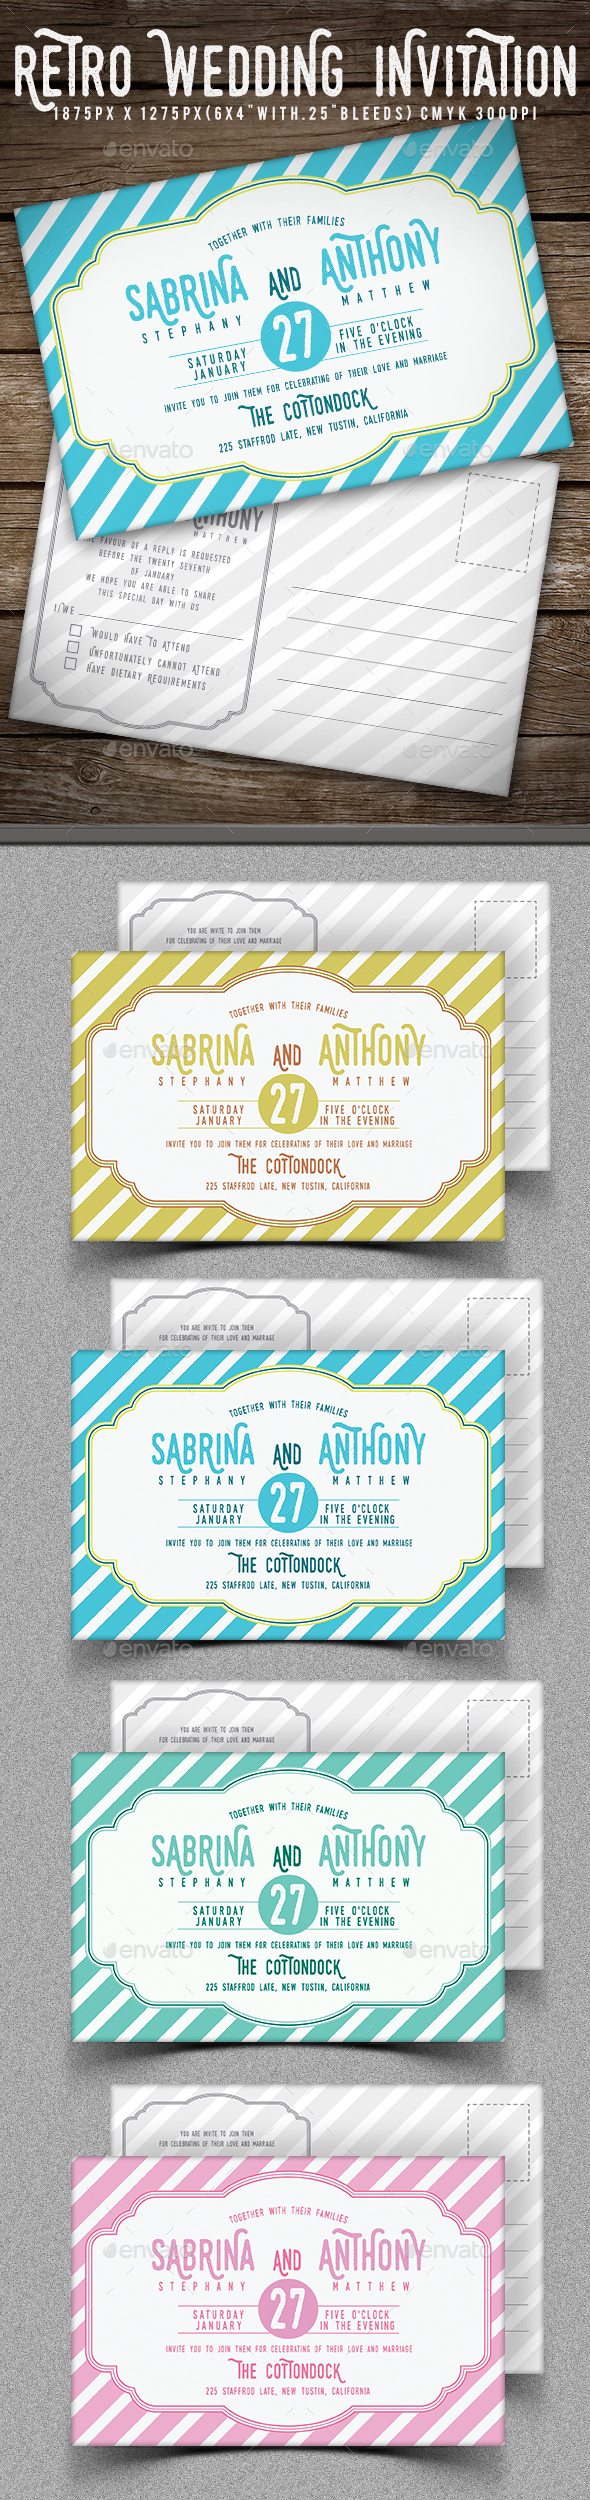 Retro Wedding Invitation - Invitations Cards & Invites